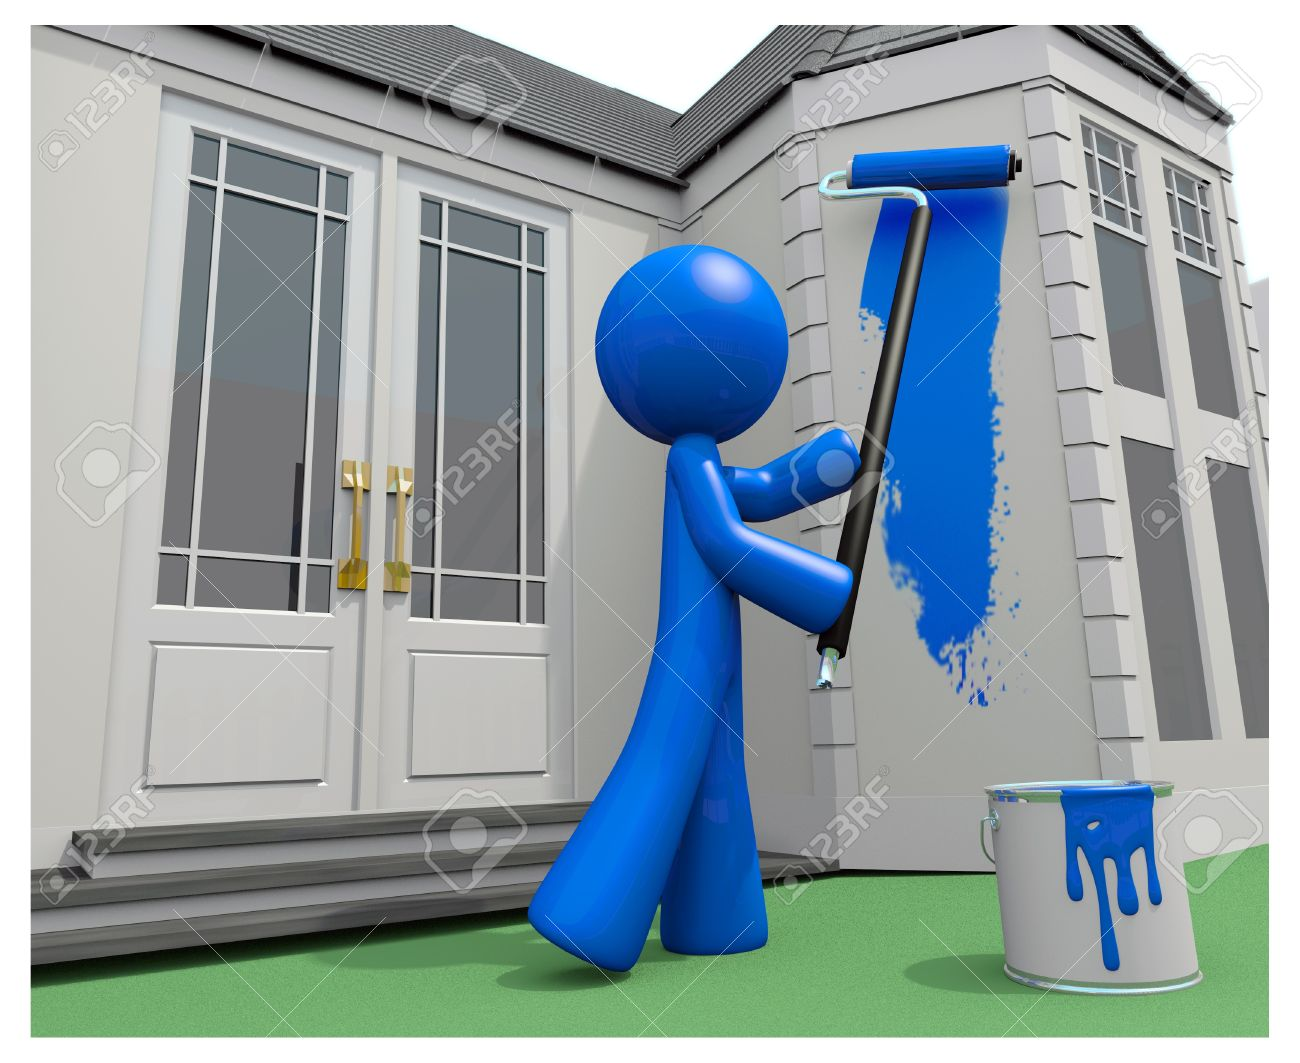 Blue Man Painting His House, 3d. Stock Photo   11134844